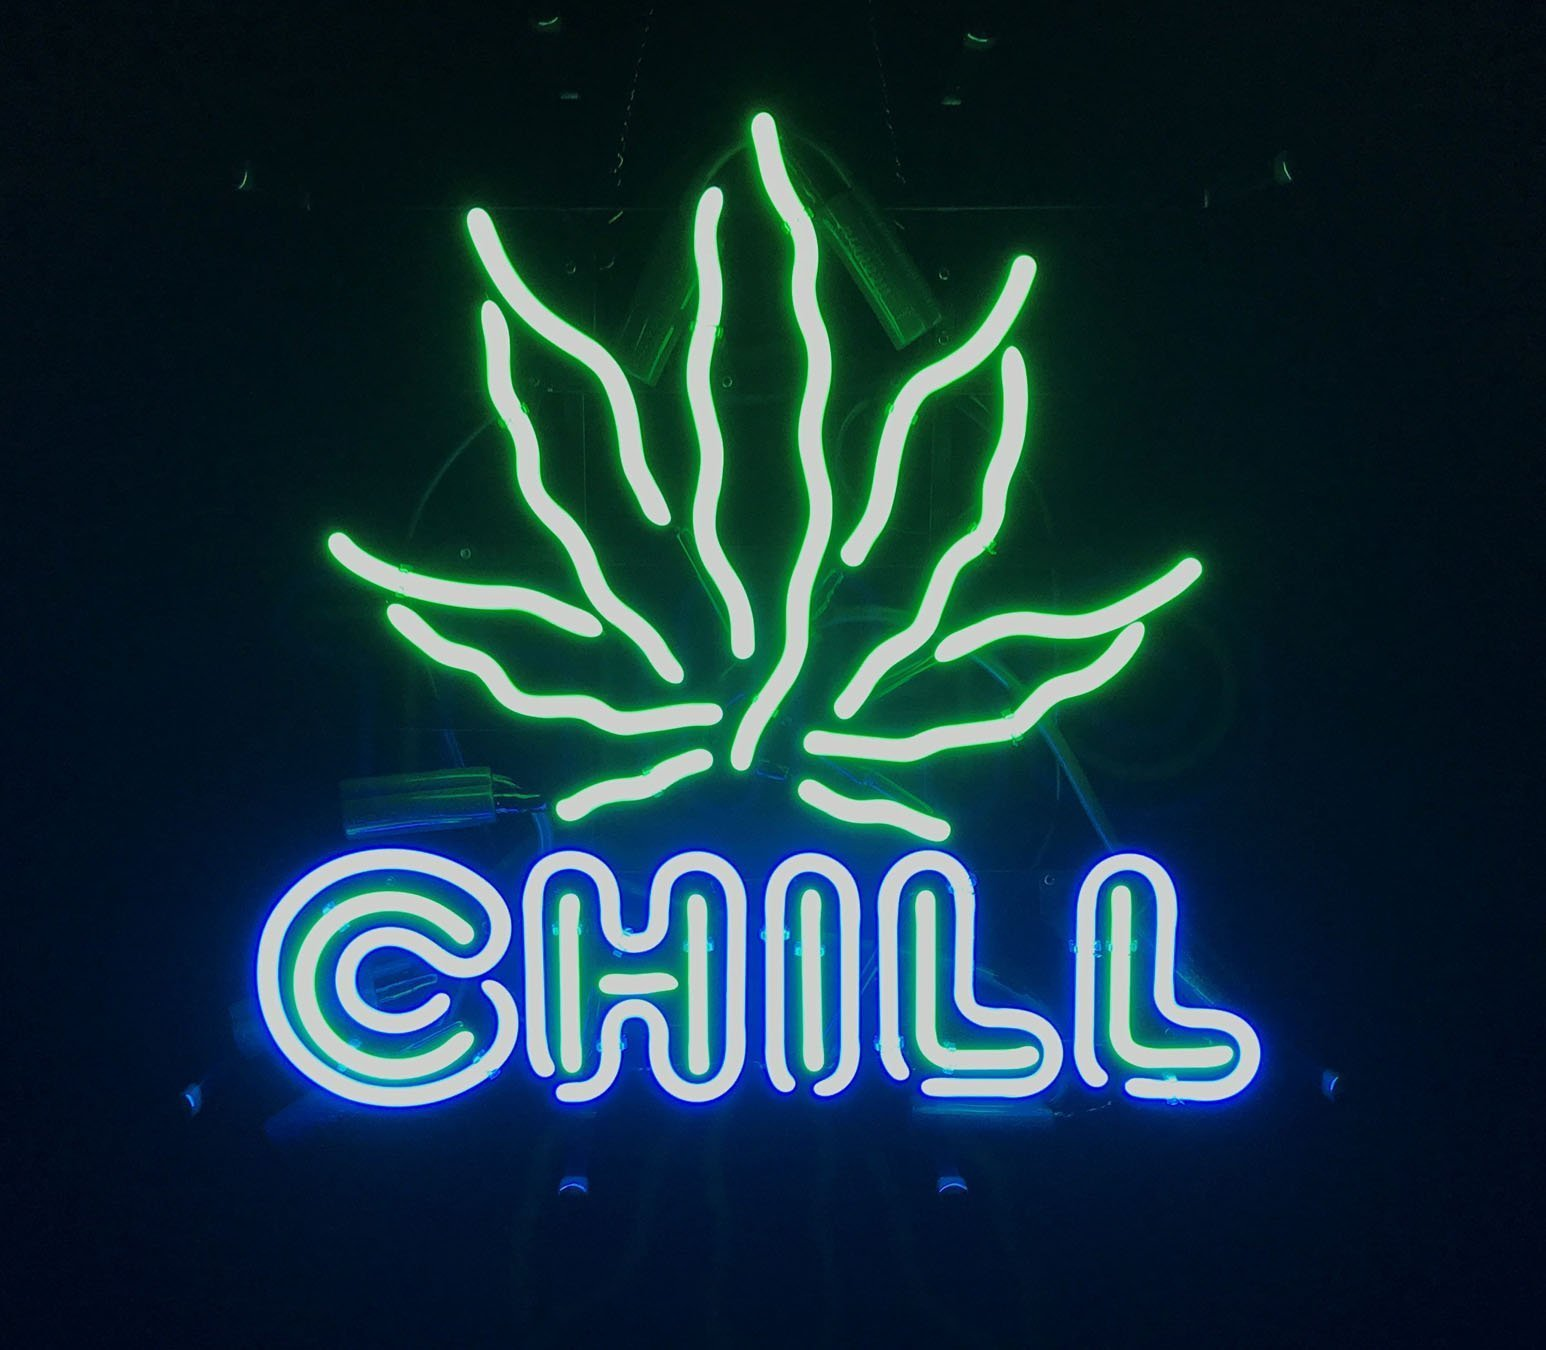 neon sign, cannabis neon, chill neon, marijuana neon, leaf neon